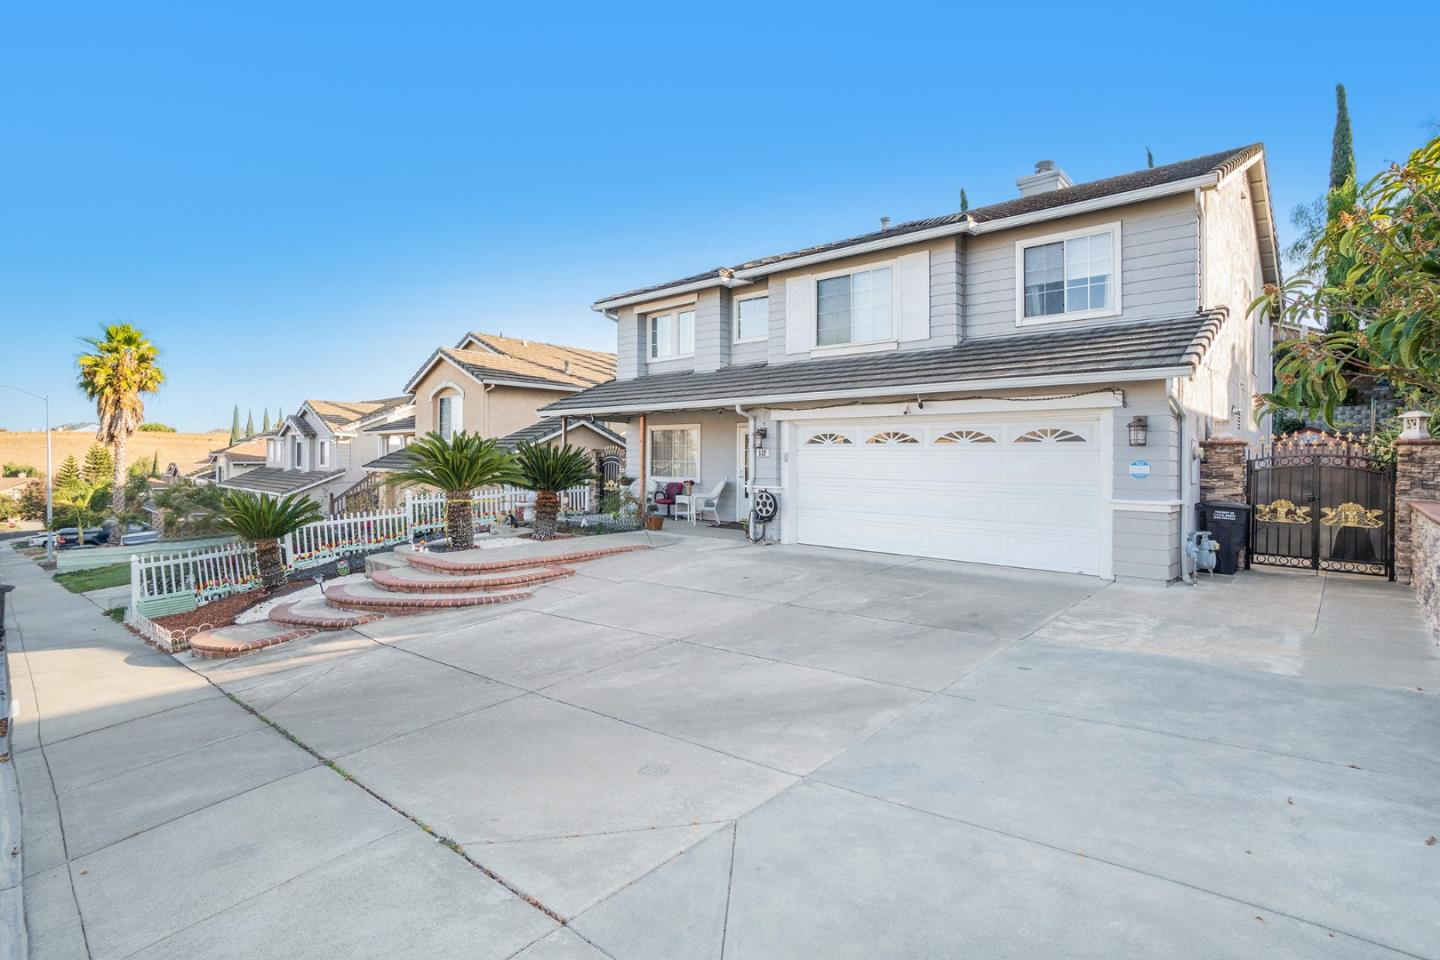 532 Burdick Drive, BAY POINT, CA 94565